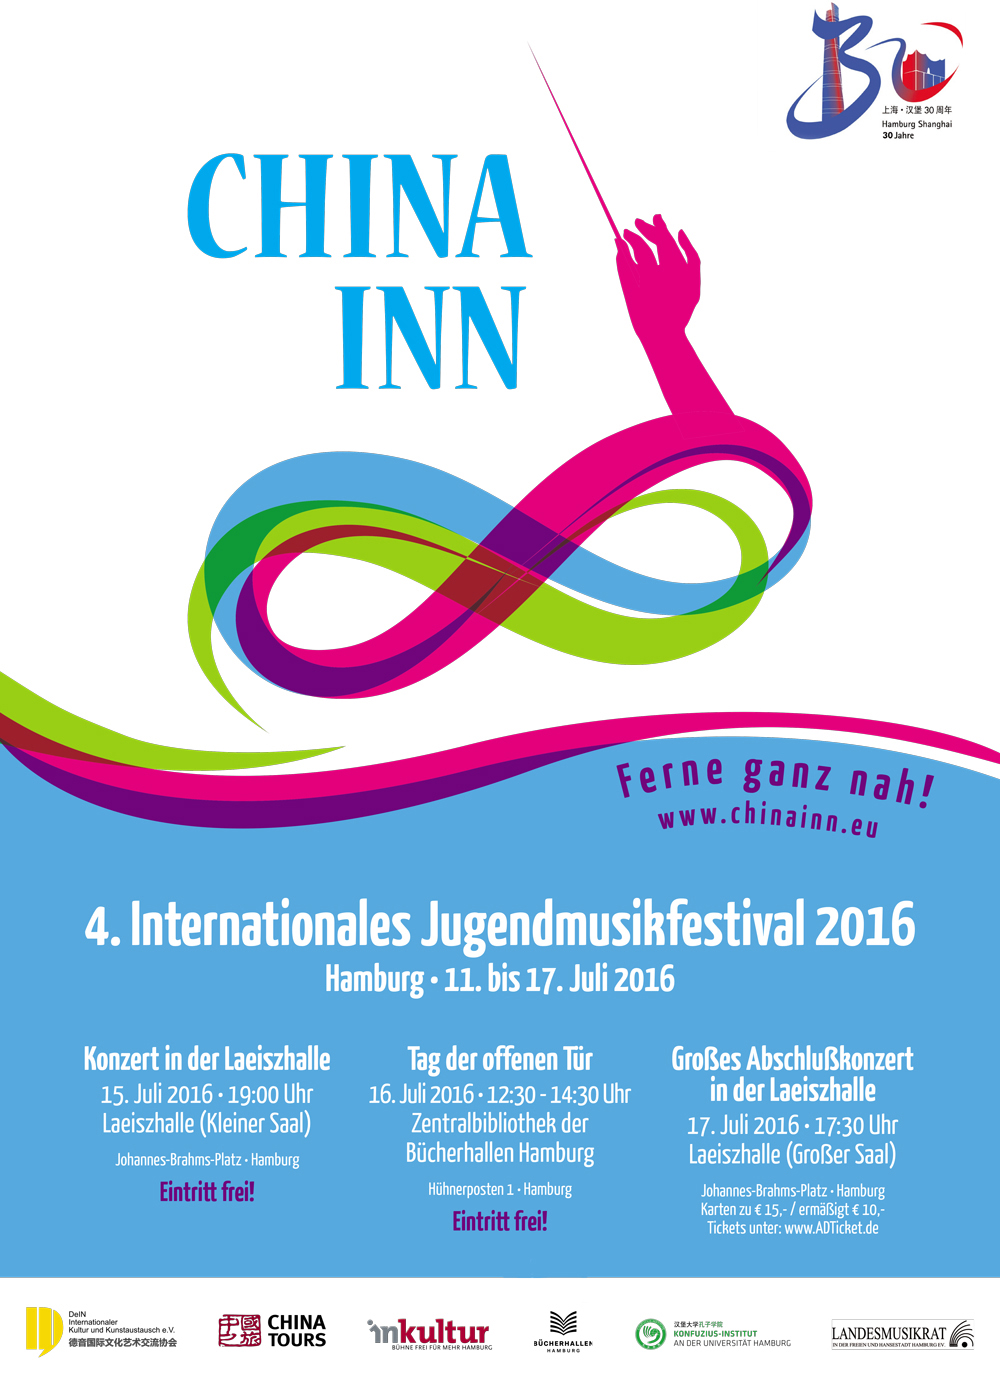 20160406 China Inn Poster A2.indd